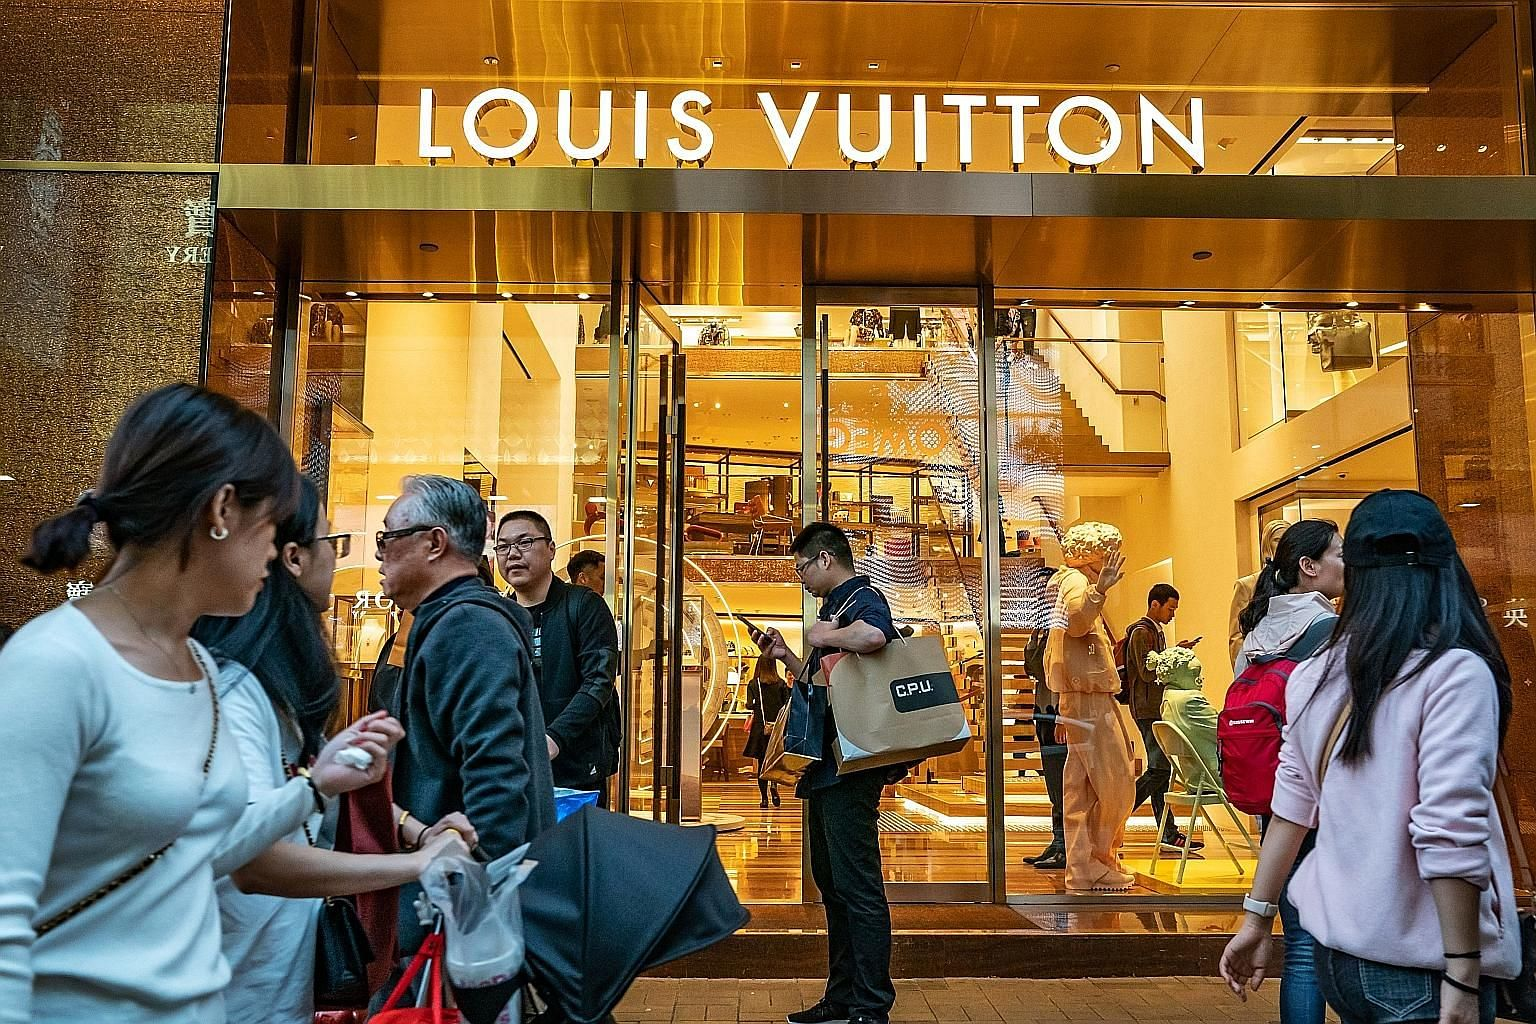 Paris-based luxury giant LVMH, which owns Louis Vuitton, is among the consumer companies still upbeat about business in China despite warnings of a softening economy from other multinationals operating in the country. Across 195 fourth-quarter earnin